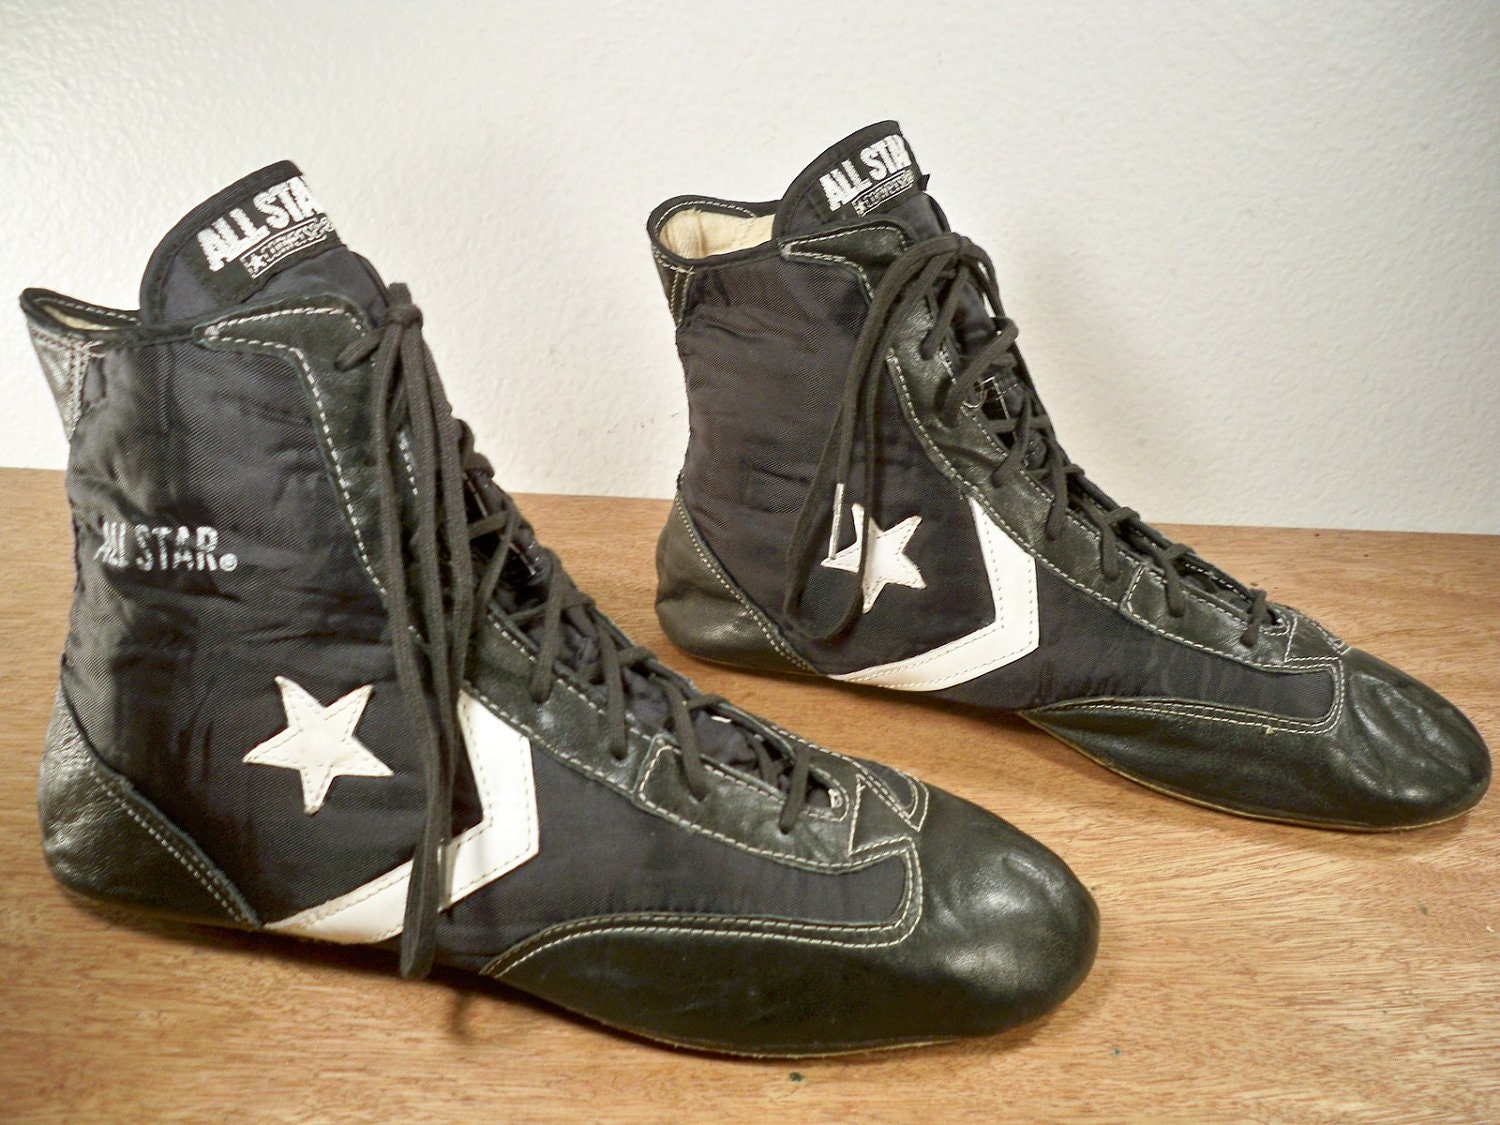 Vintage CONVERSE ALL STAR High Top Black Leather Boxing